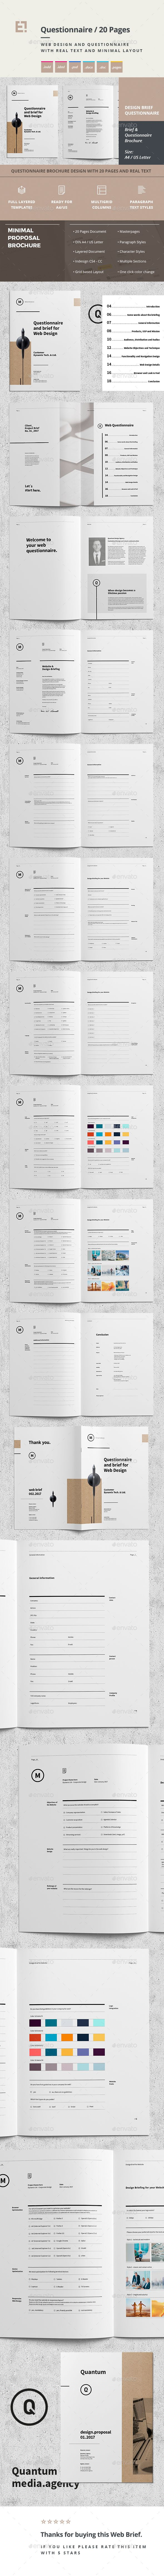 Questionnaire Web Design | Brochure template, Brochures and Template